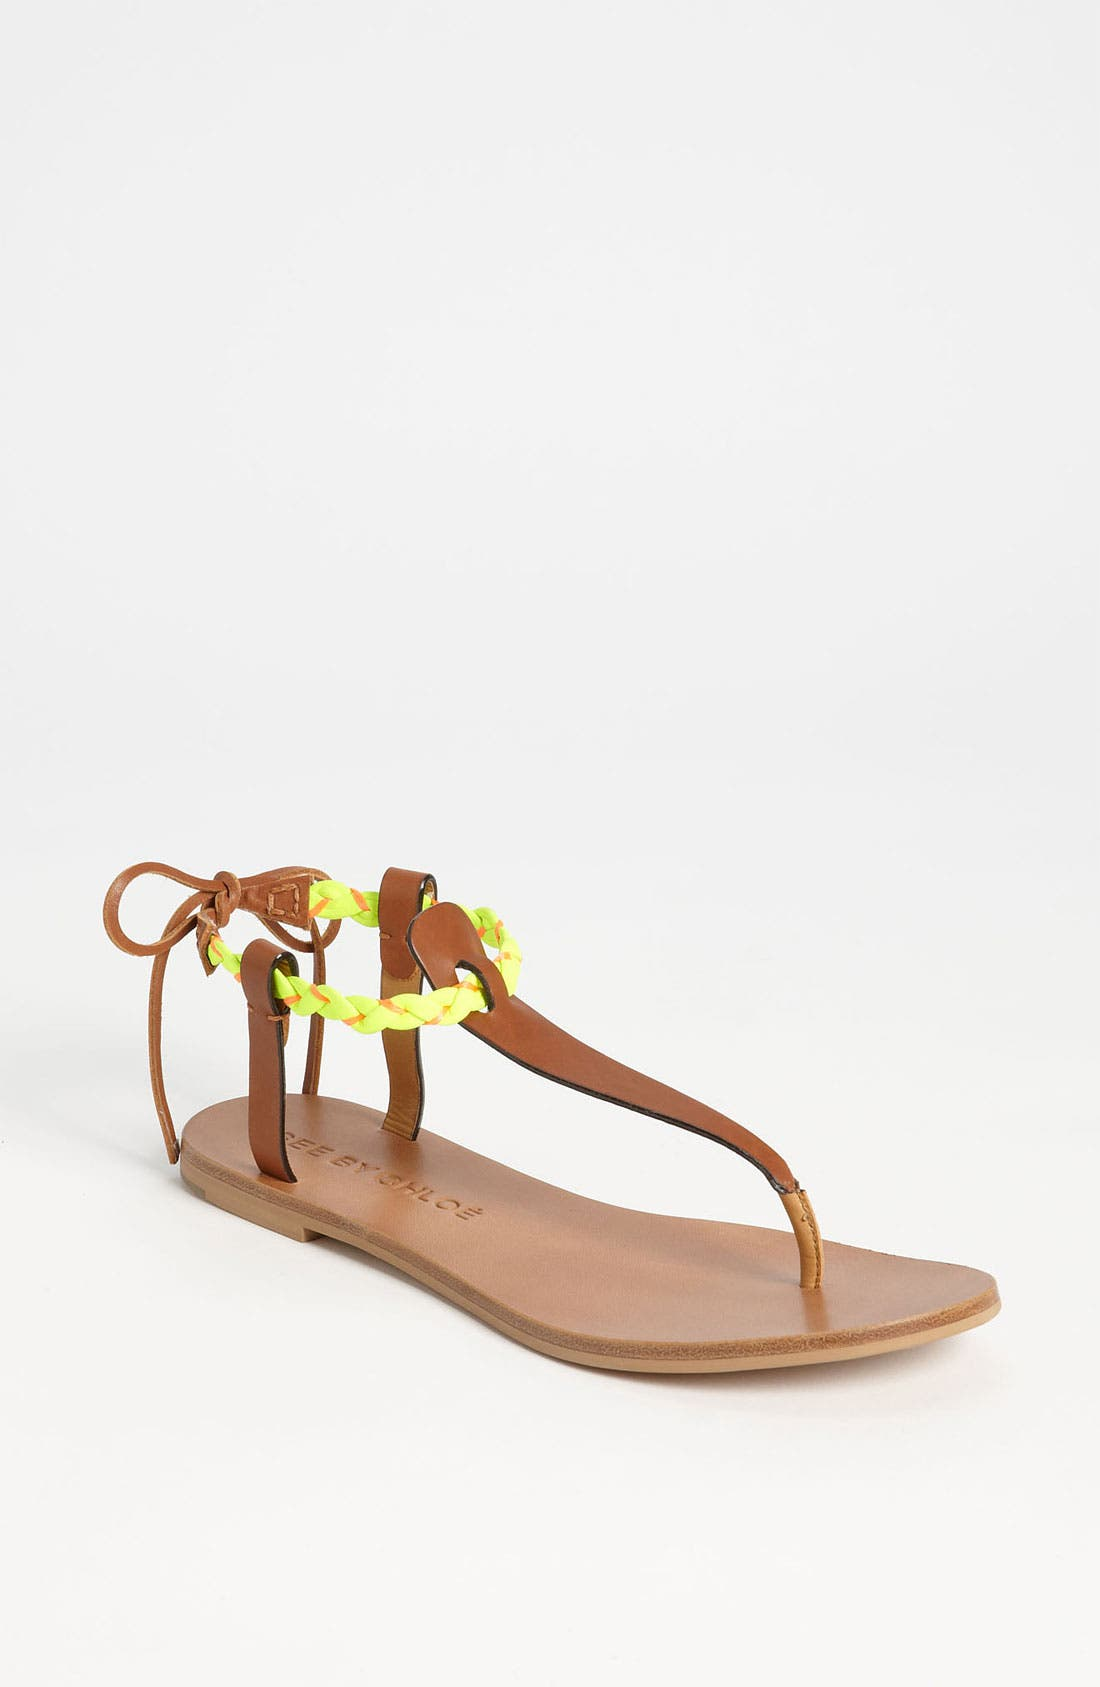 Alternate Image 1 Selected - See by Chloé 'Summer' Thong Sandal